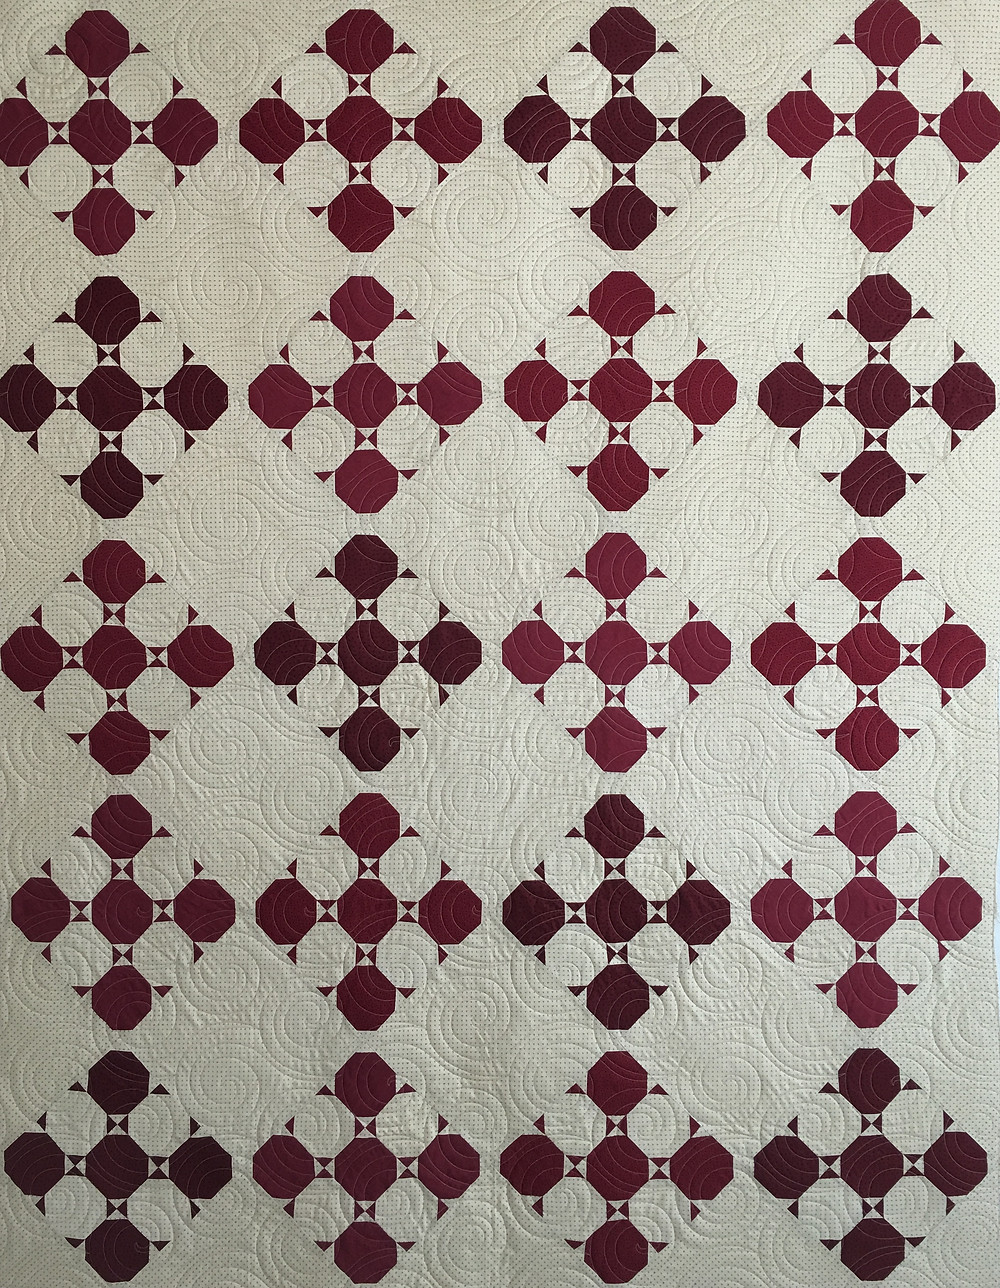 Snow Bound Quilt by Joan Salesman